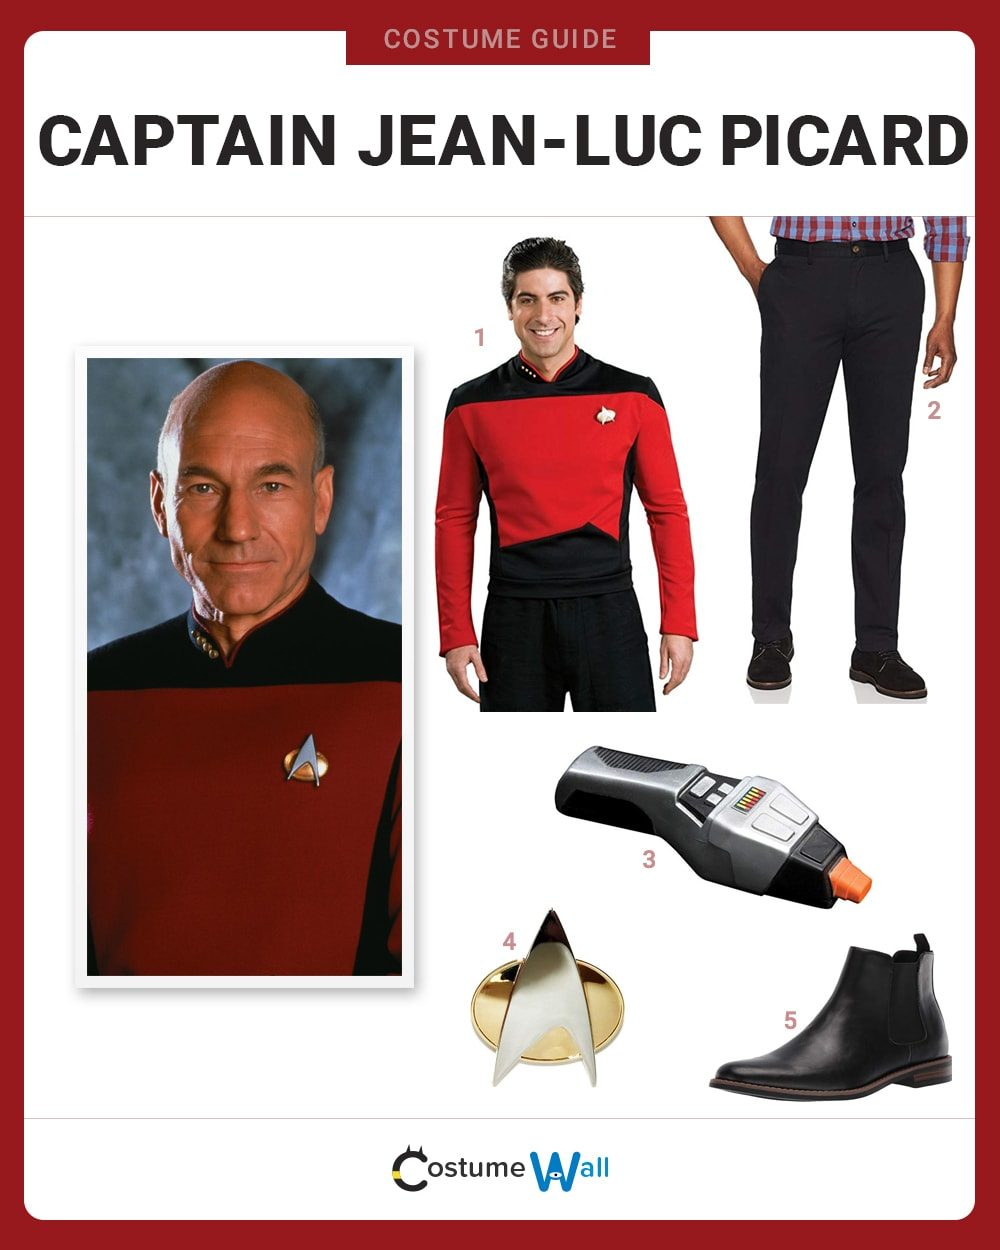 Captain Jean-Luc Picard Costume Guide